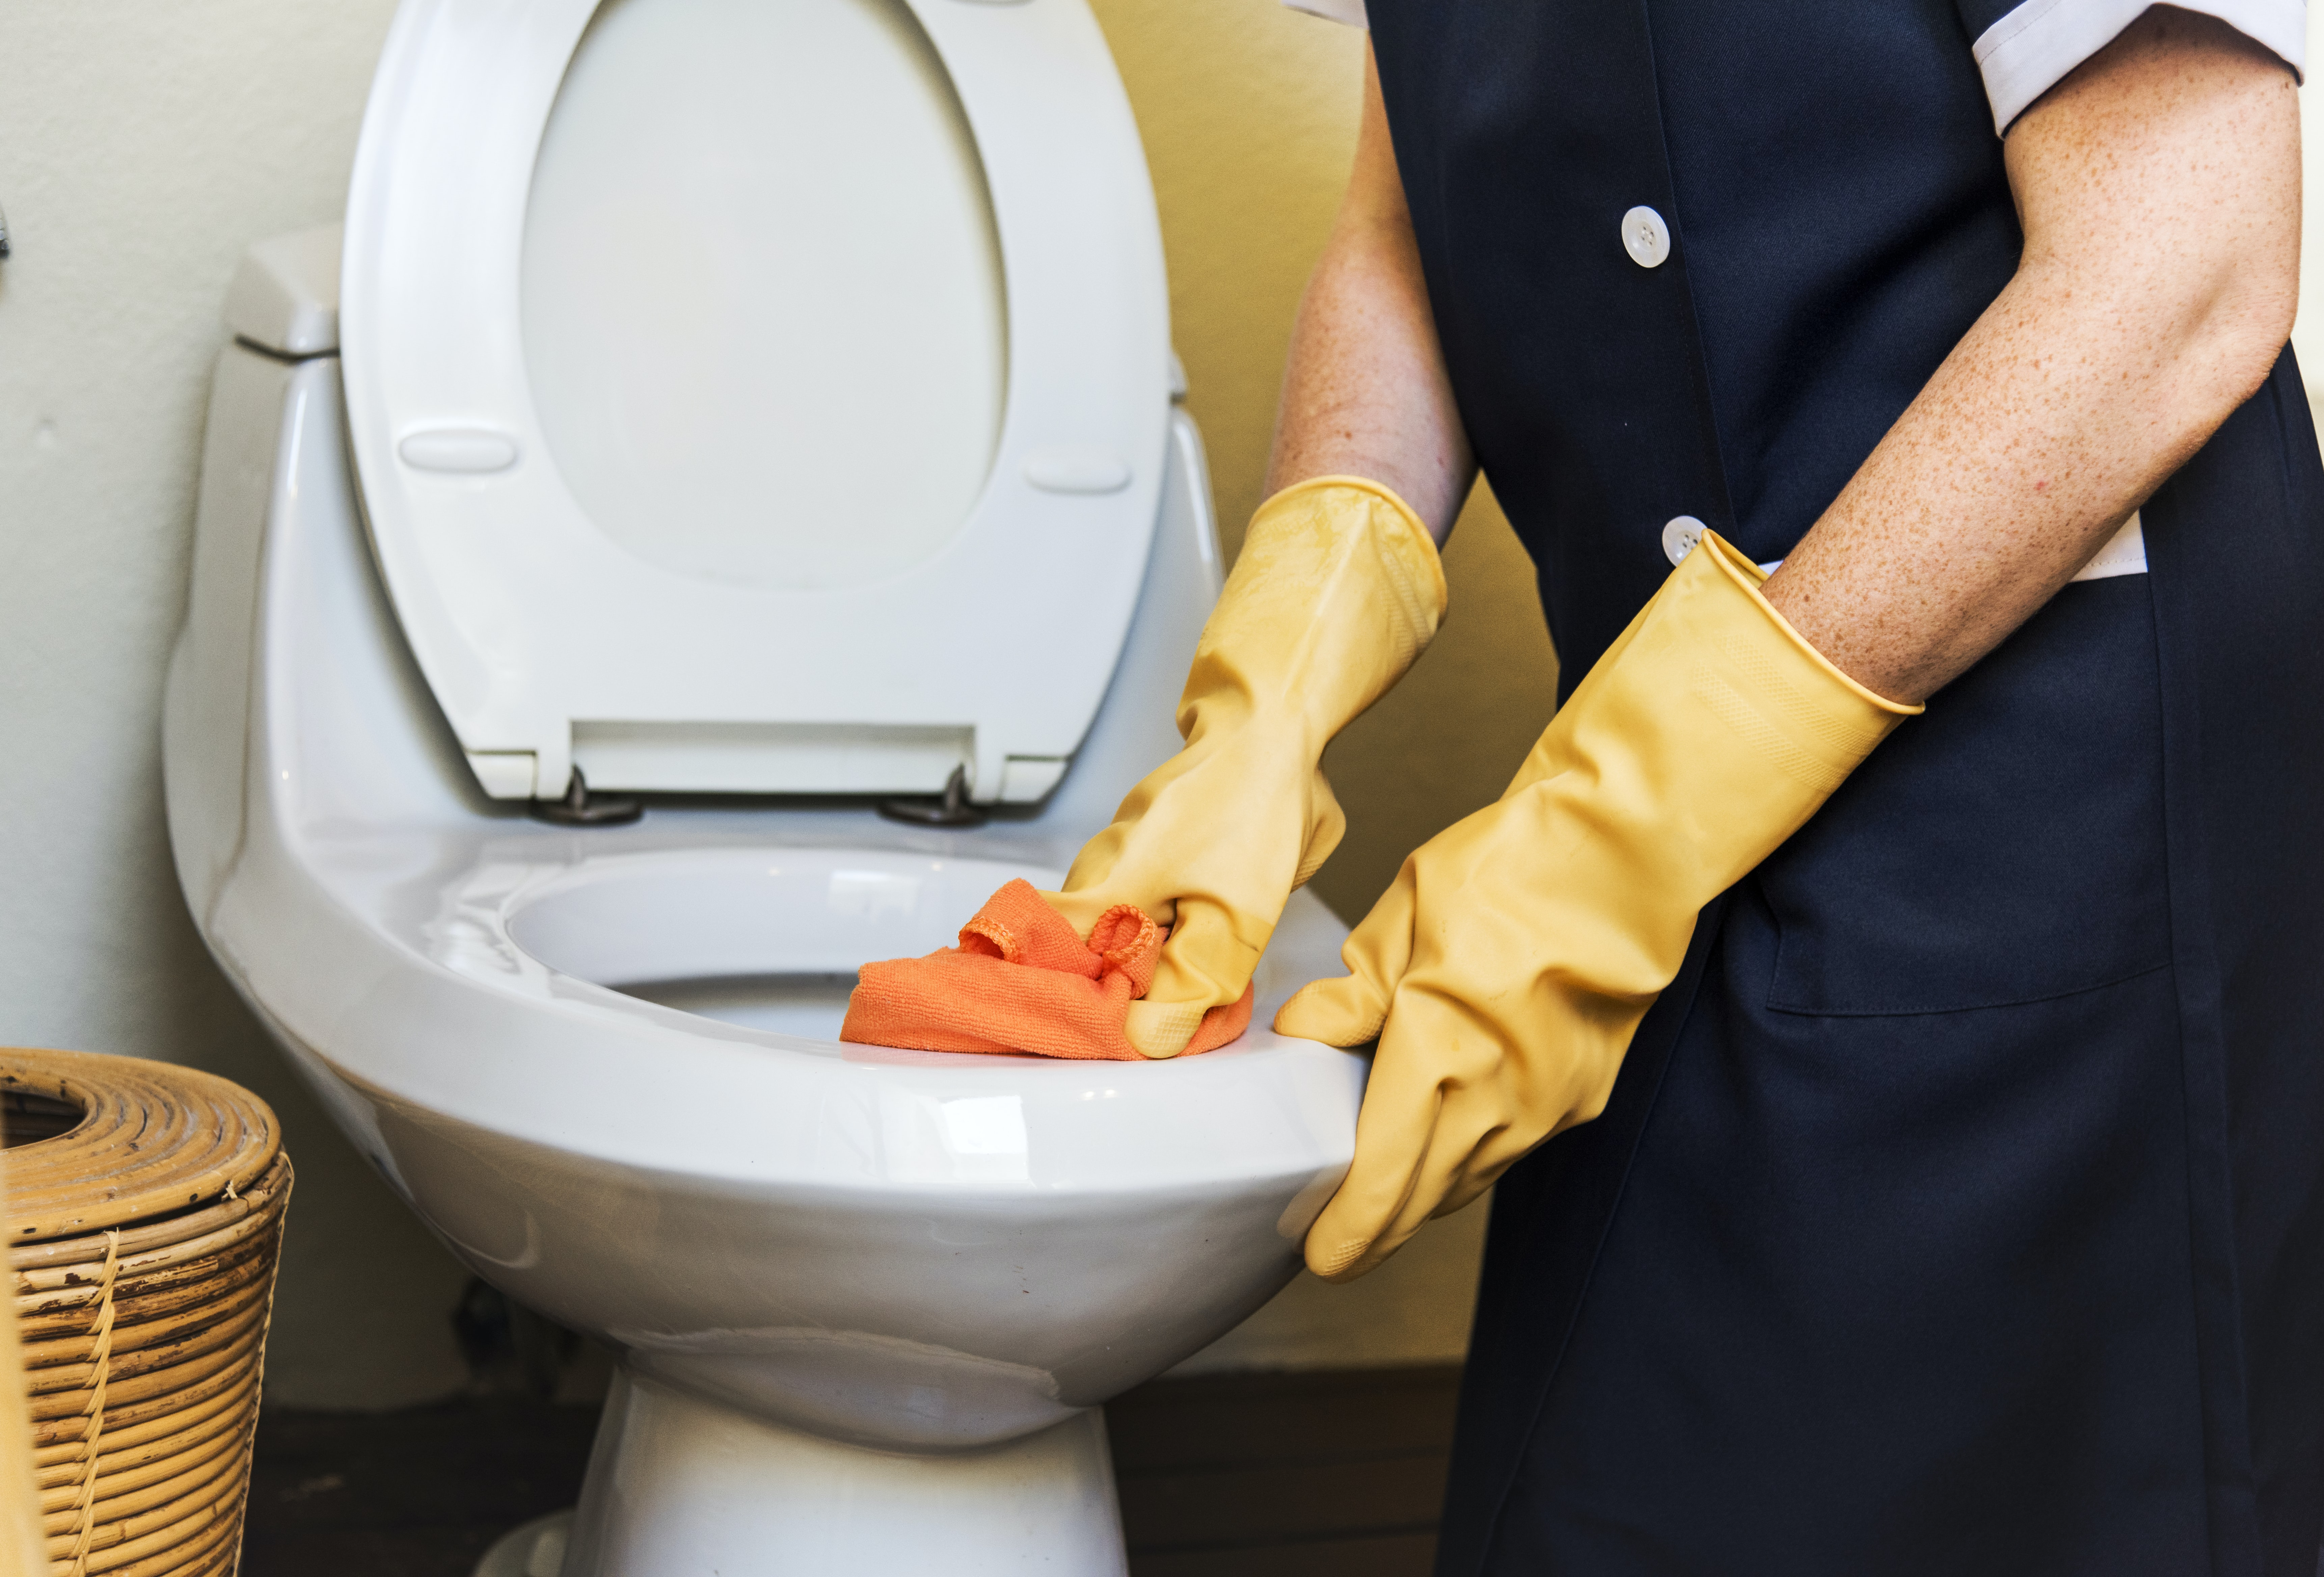 person scrubbing white ceramic toilet bowl